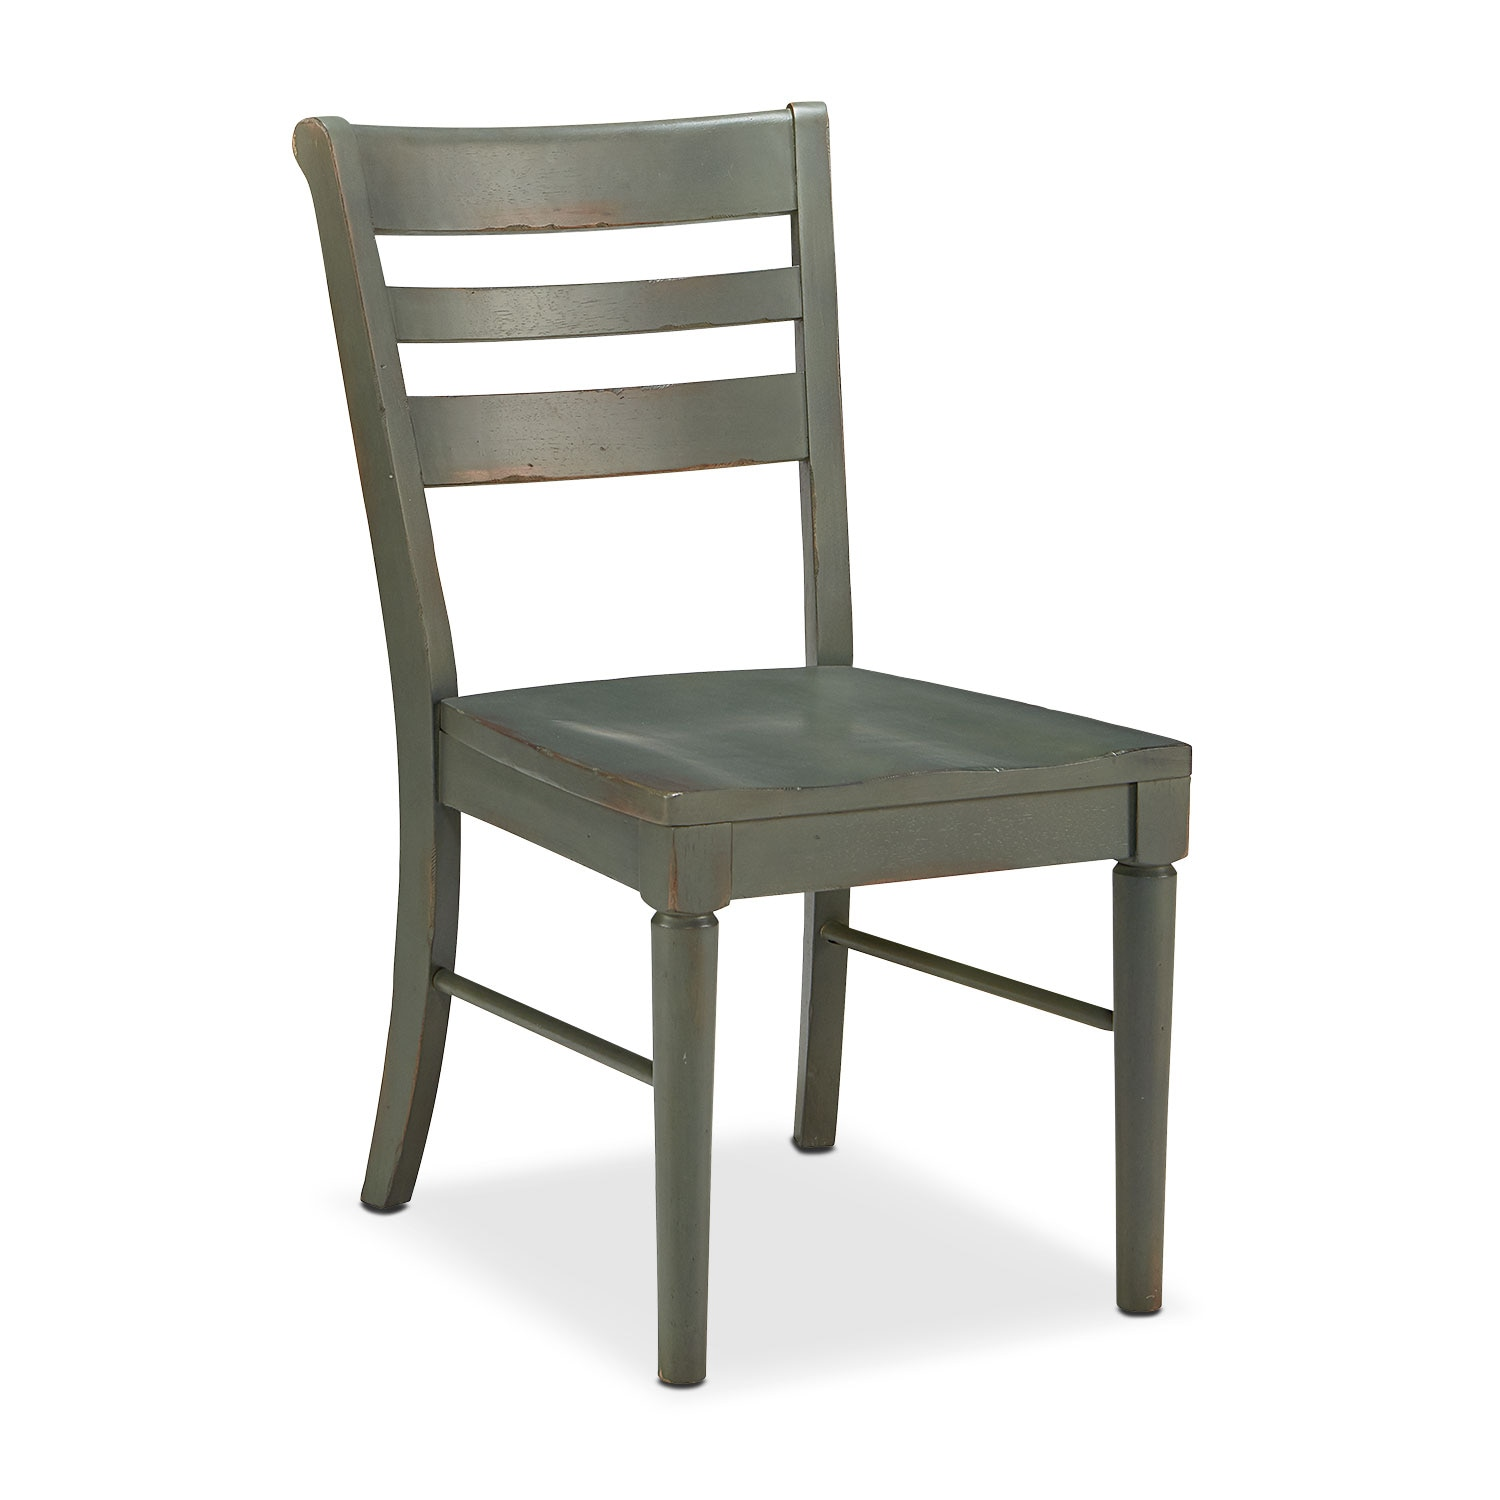 Dining Room Furniture - Kempton Slat Back Chair - Patina